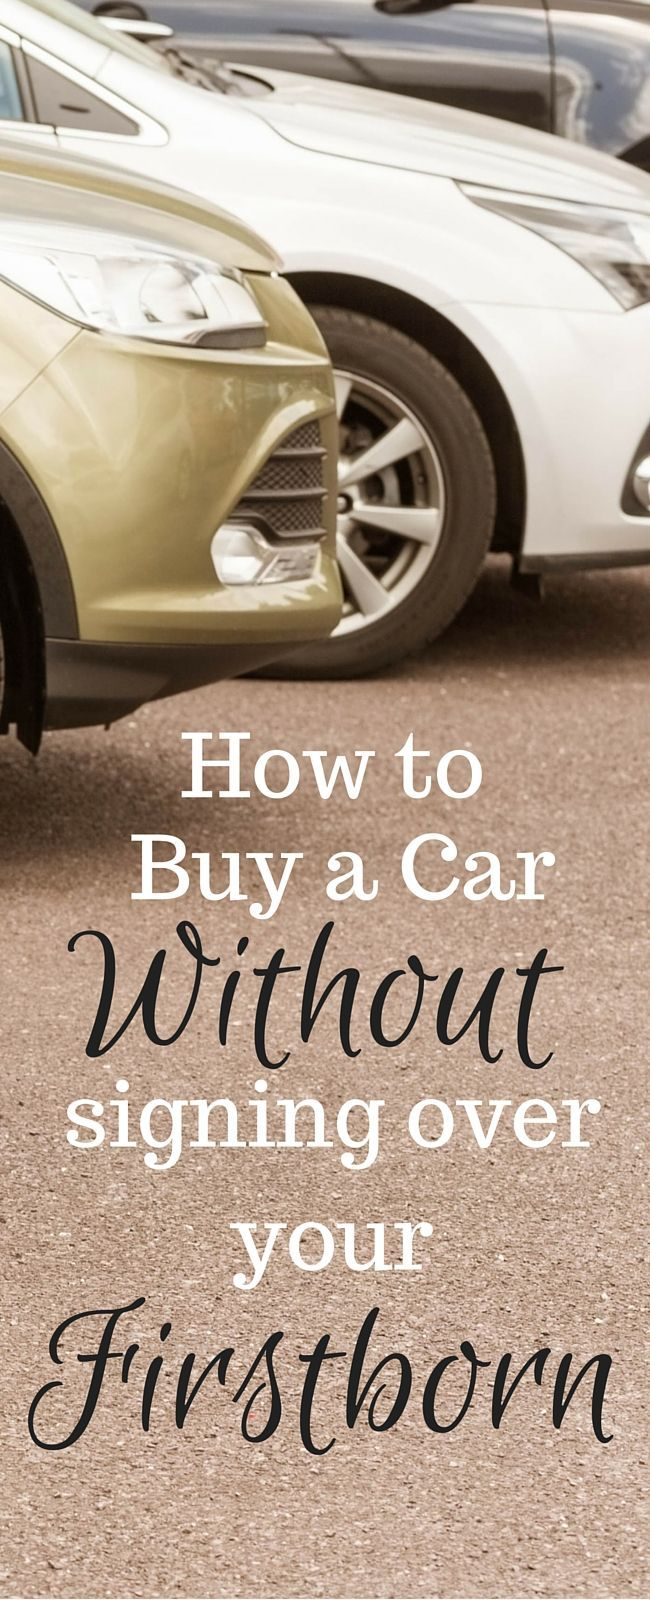 Best 25+ Buy a car ideas on Pinterest | Car buying tips, Buying ...